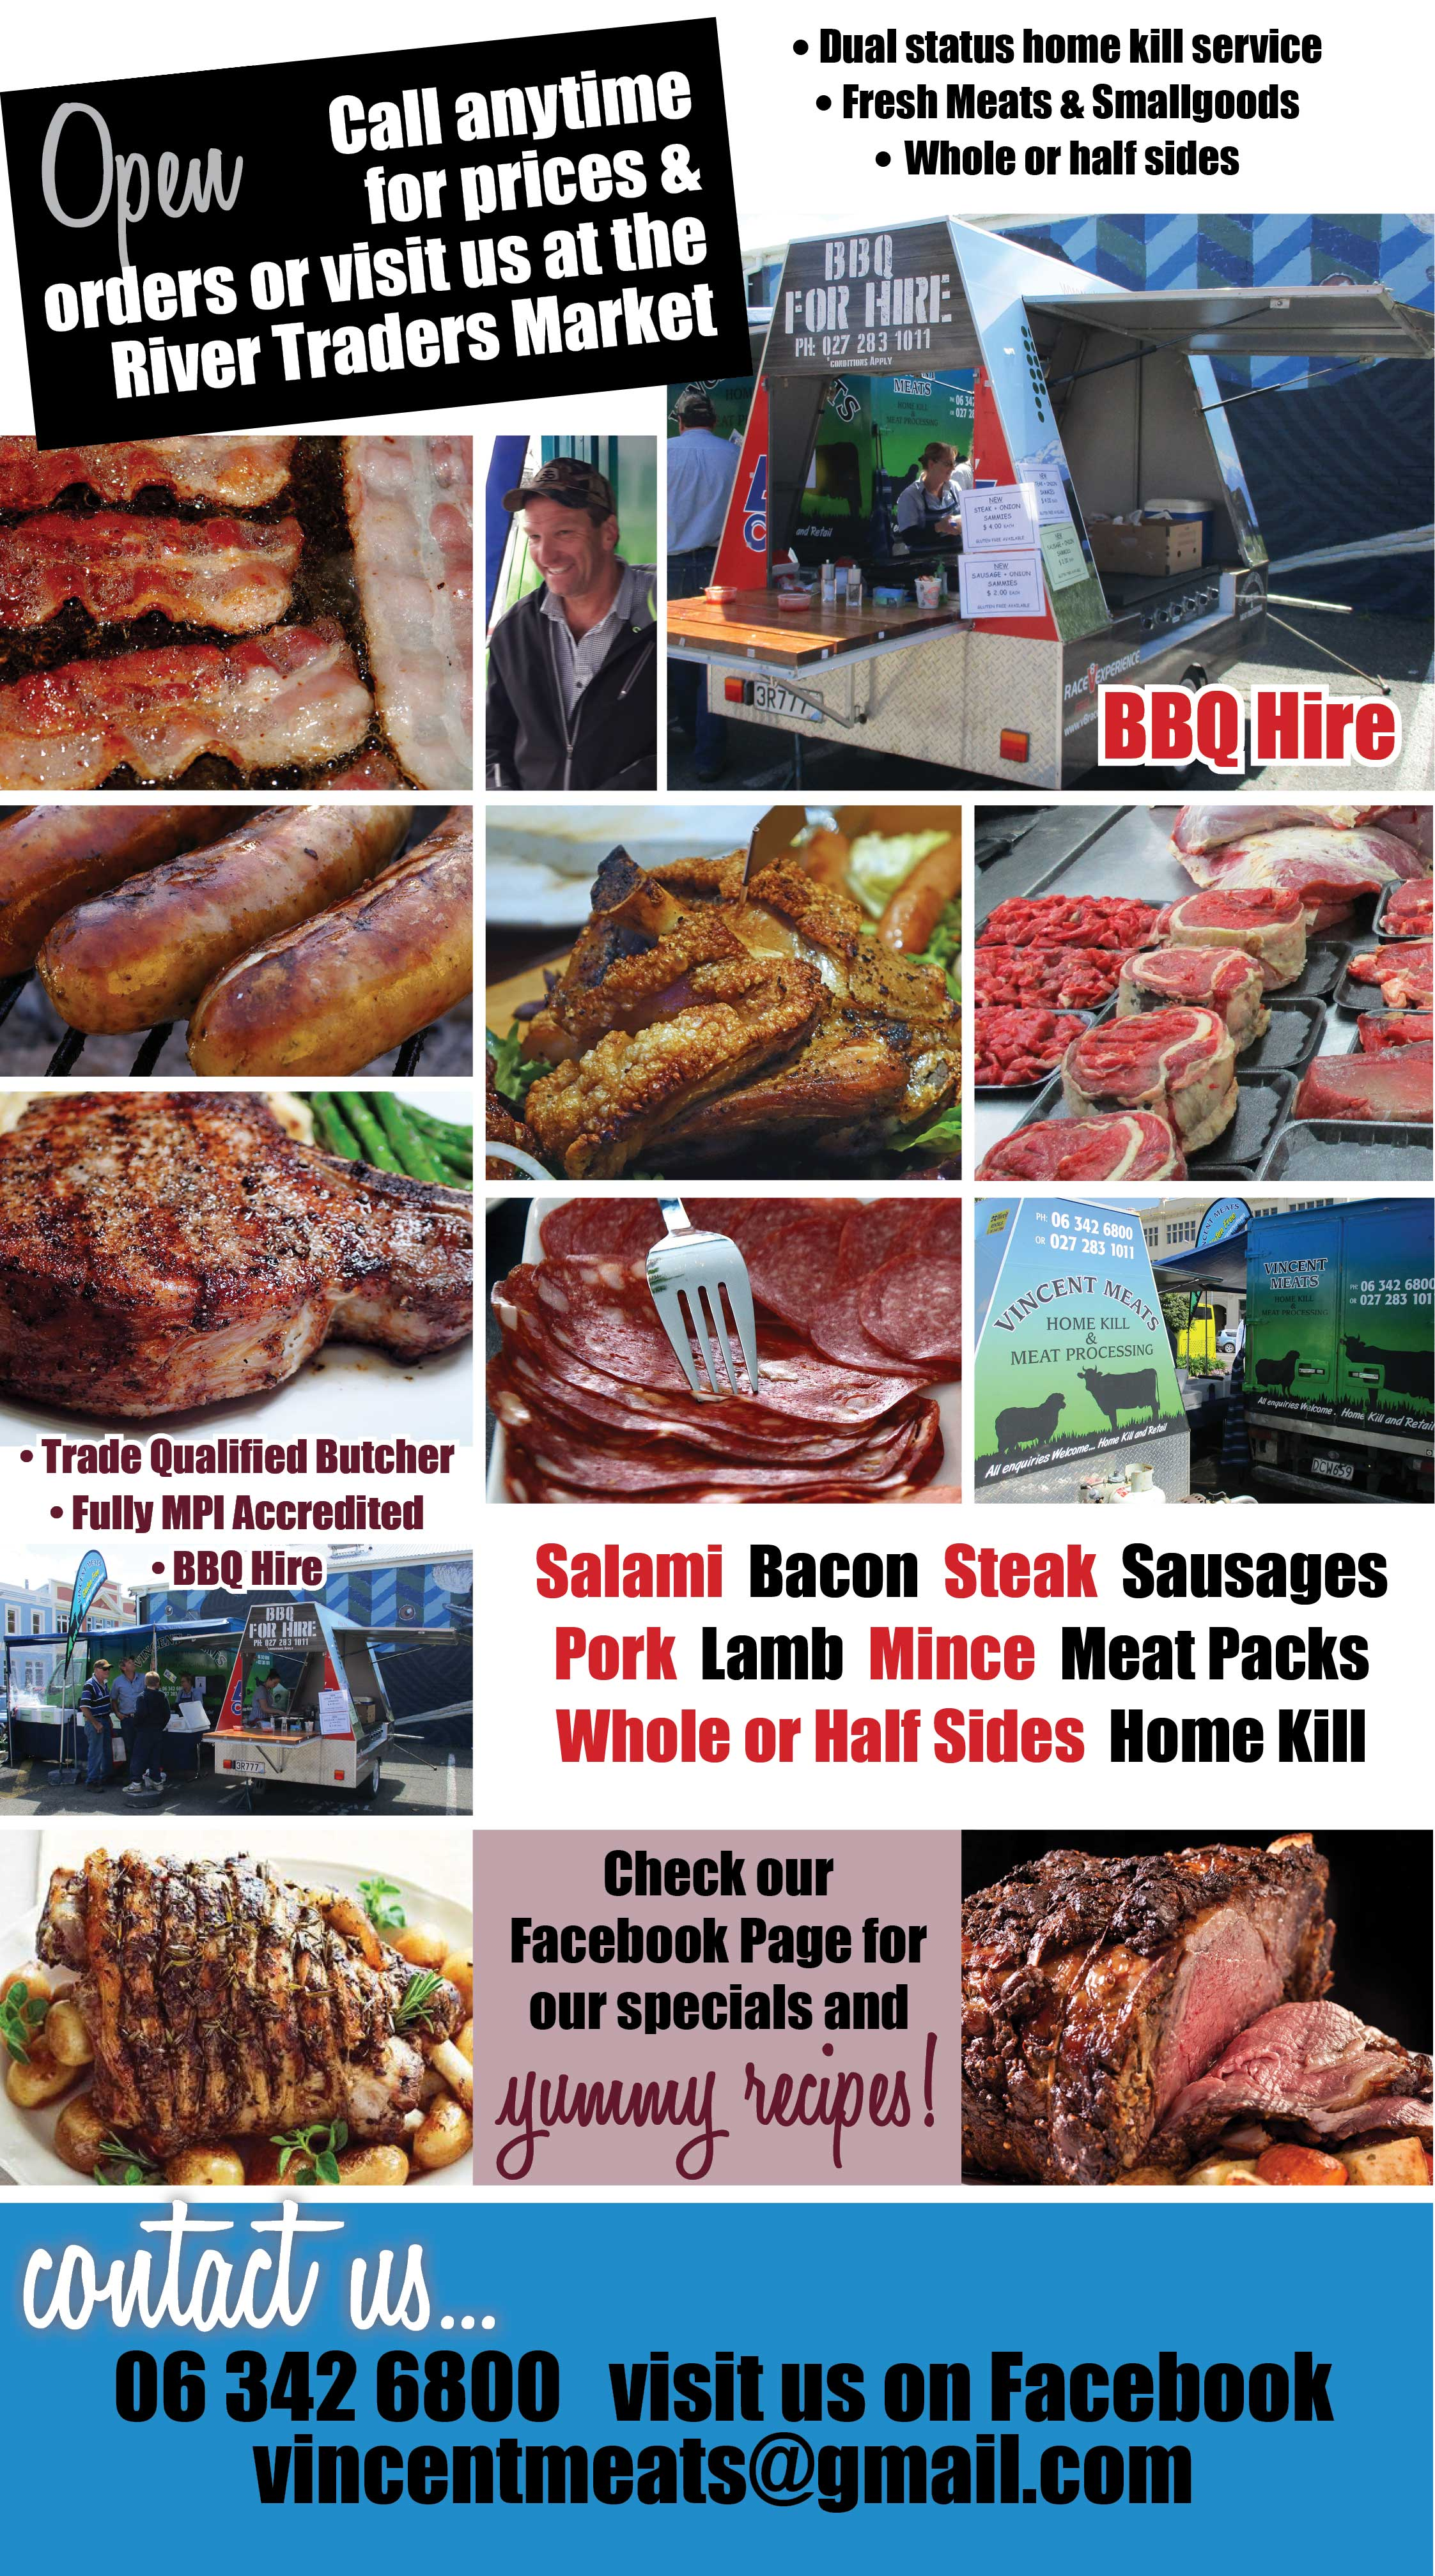 Vincent Meats Home Kill, Dual status home kill service, fresh meats and smallgoods, whole or half sides, BBQ hire, slalmi, bacon, steak, sausages, pork, lamb, mince, meat packs. Home killing Wanganui, home kill service, wanganui home kill, home kill wanganui.